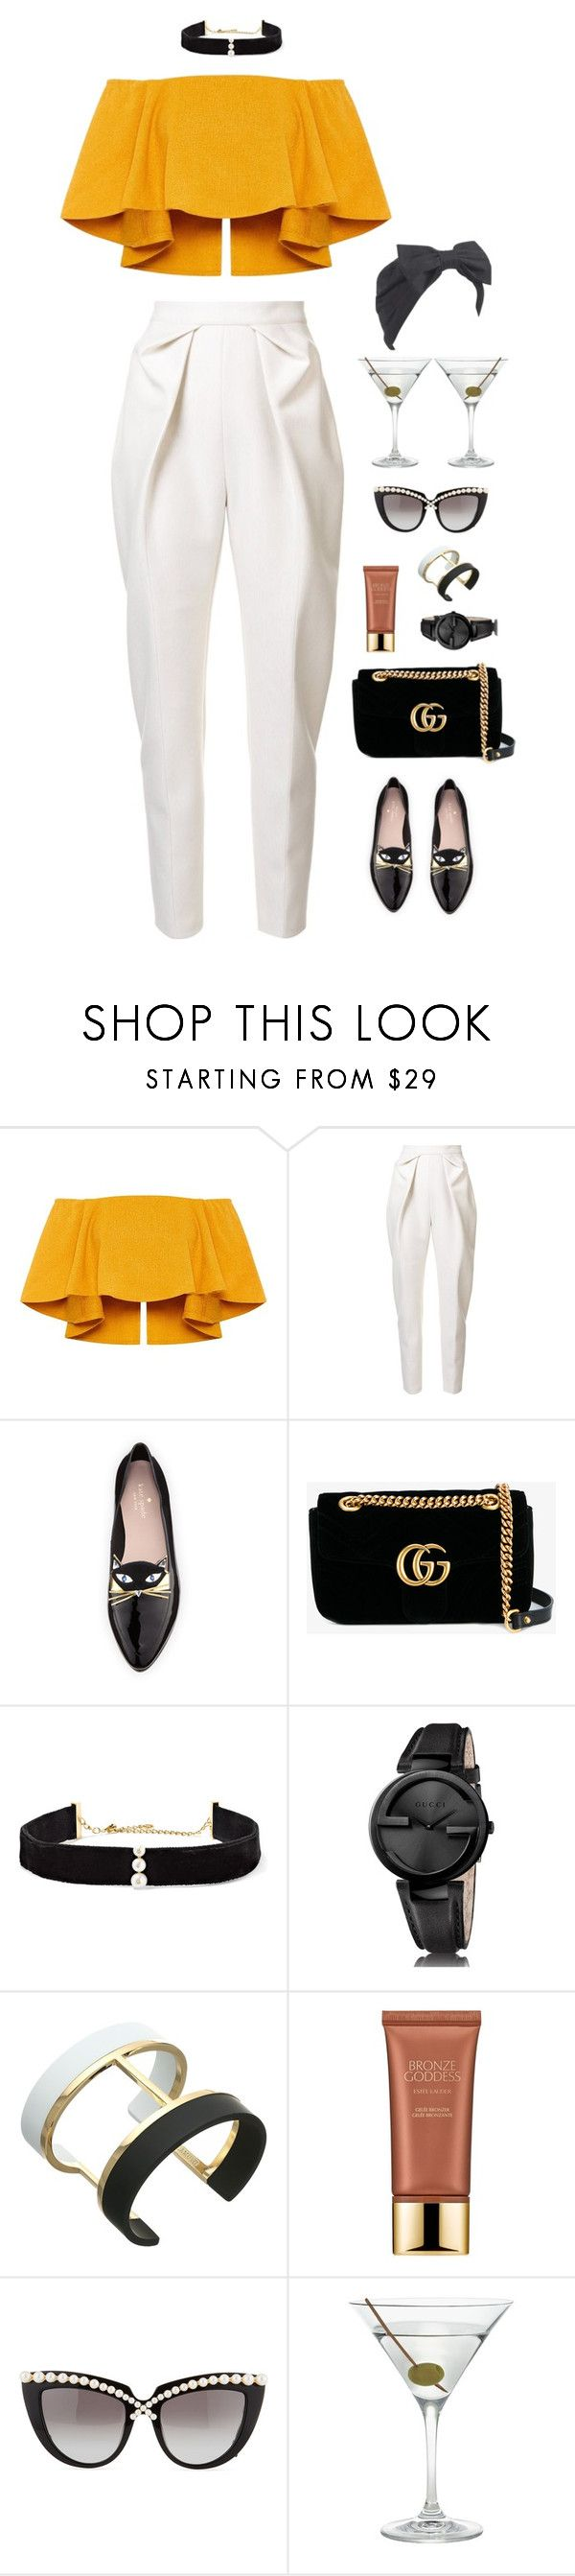 """""""Invisible Tan Lines"""" by xoxomuty on Polyvore featuring Delpozo, Kate Spade, Gucci, Anissa Kermiche, Vince Camuto, Estée Lauder, Anna-Karin Karlsson, Nordstrom, Beauxoxo and polyvoreOOTD"""